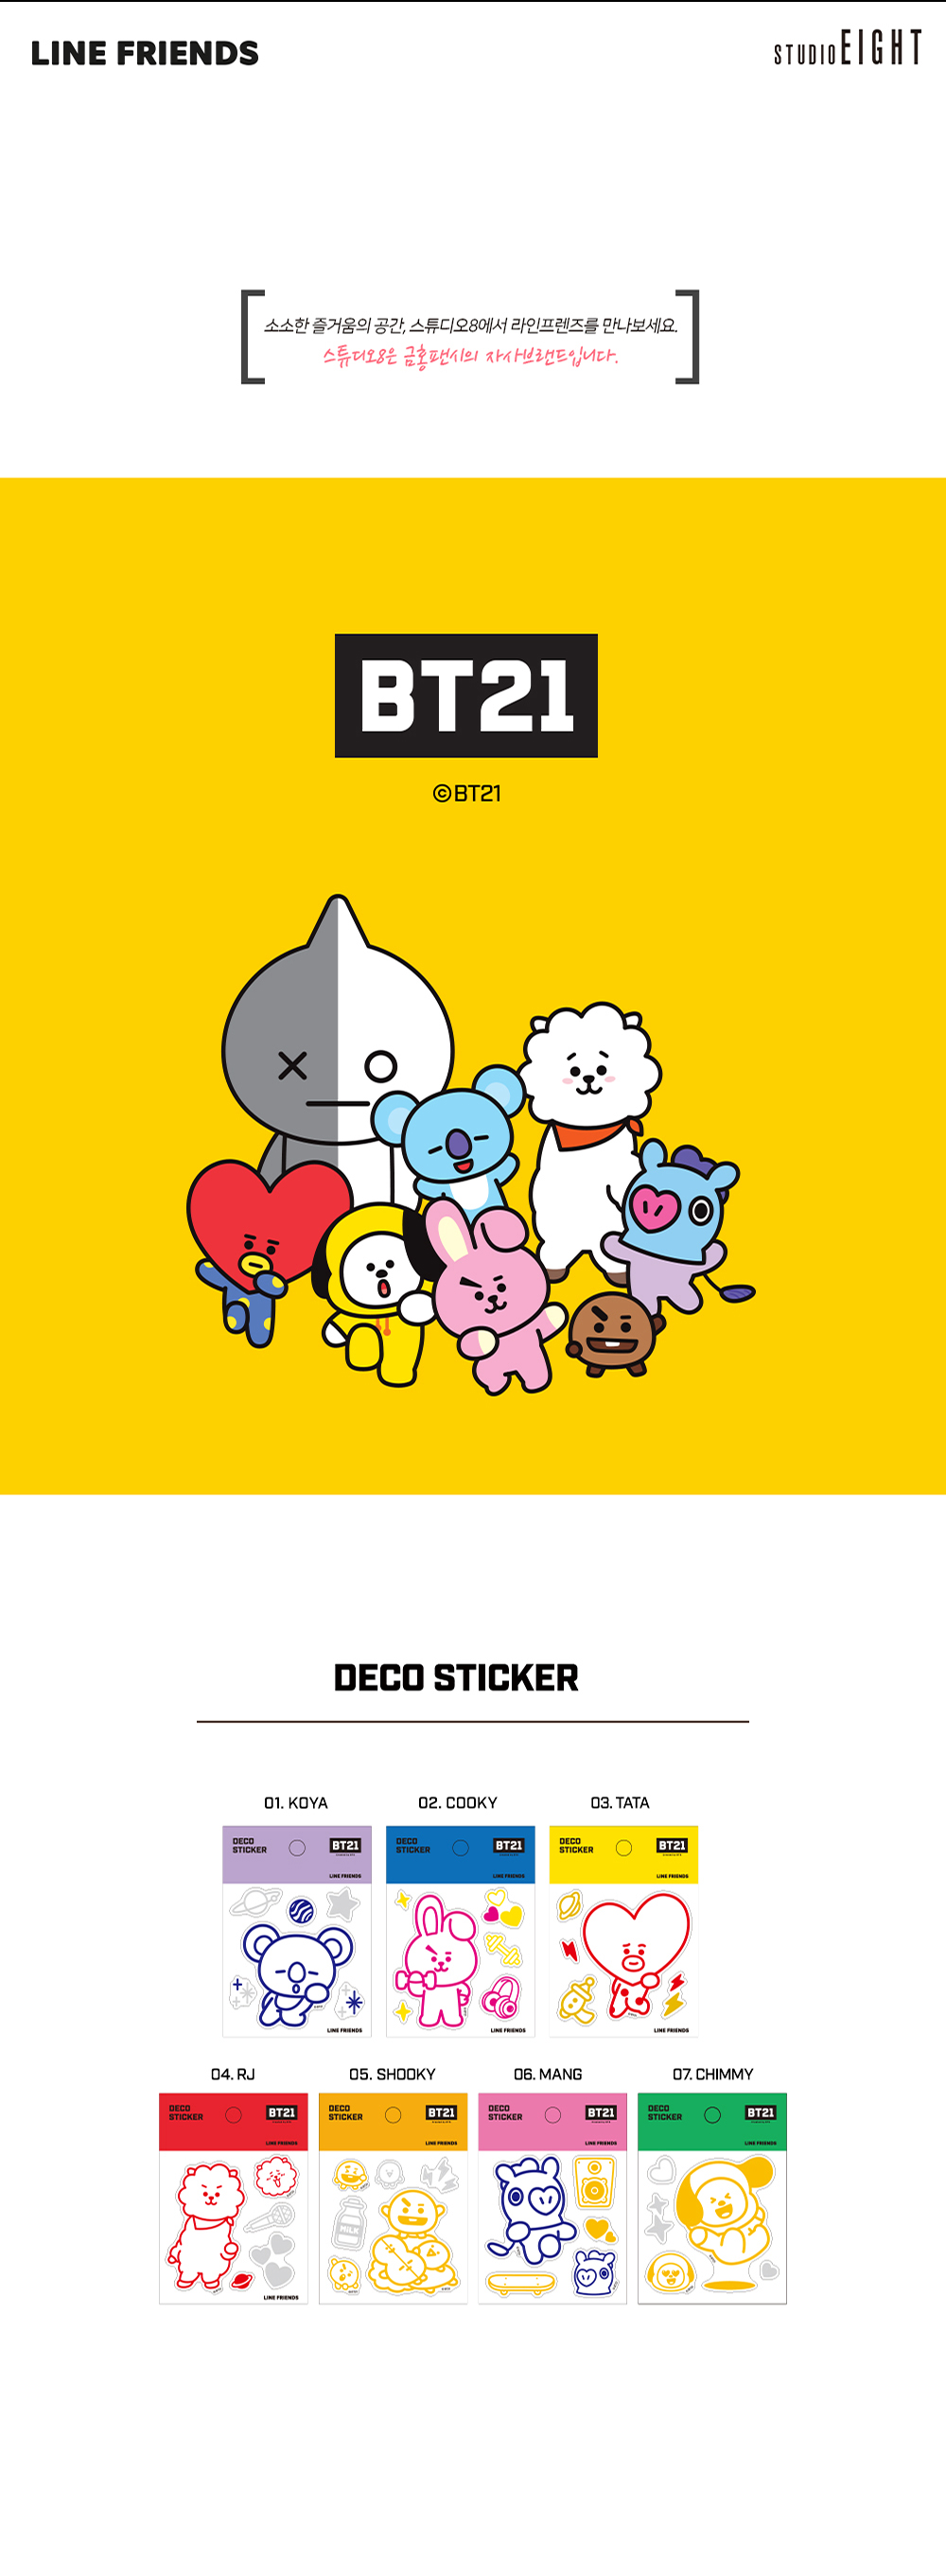 bt21_kf_decosticker_01.jpg